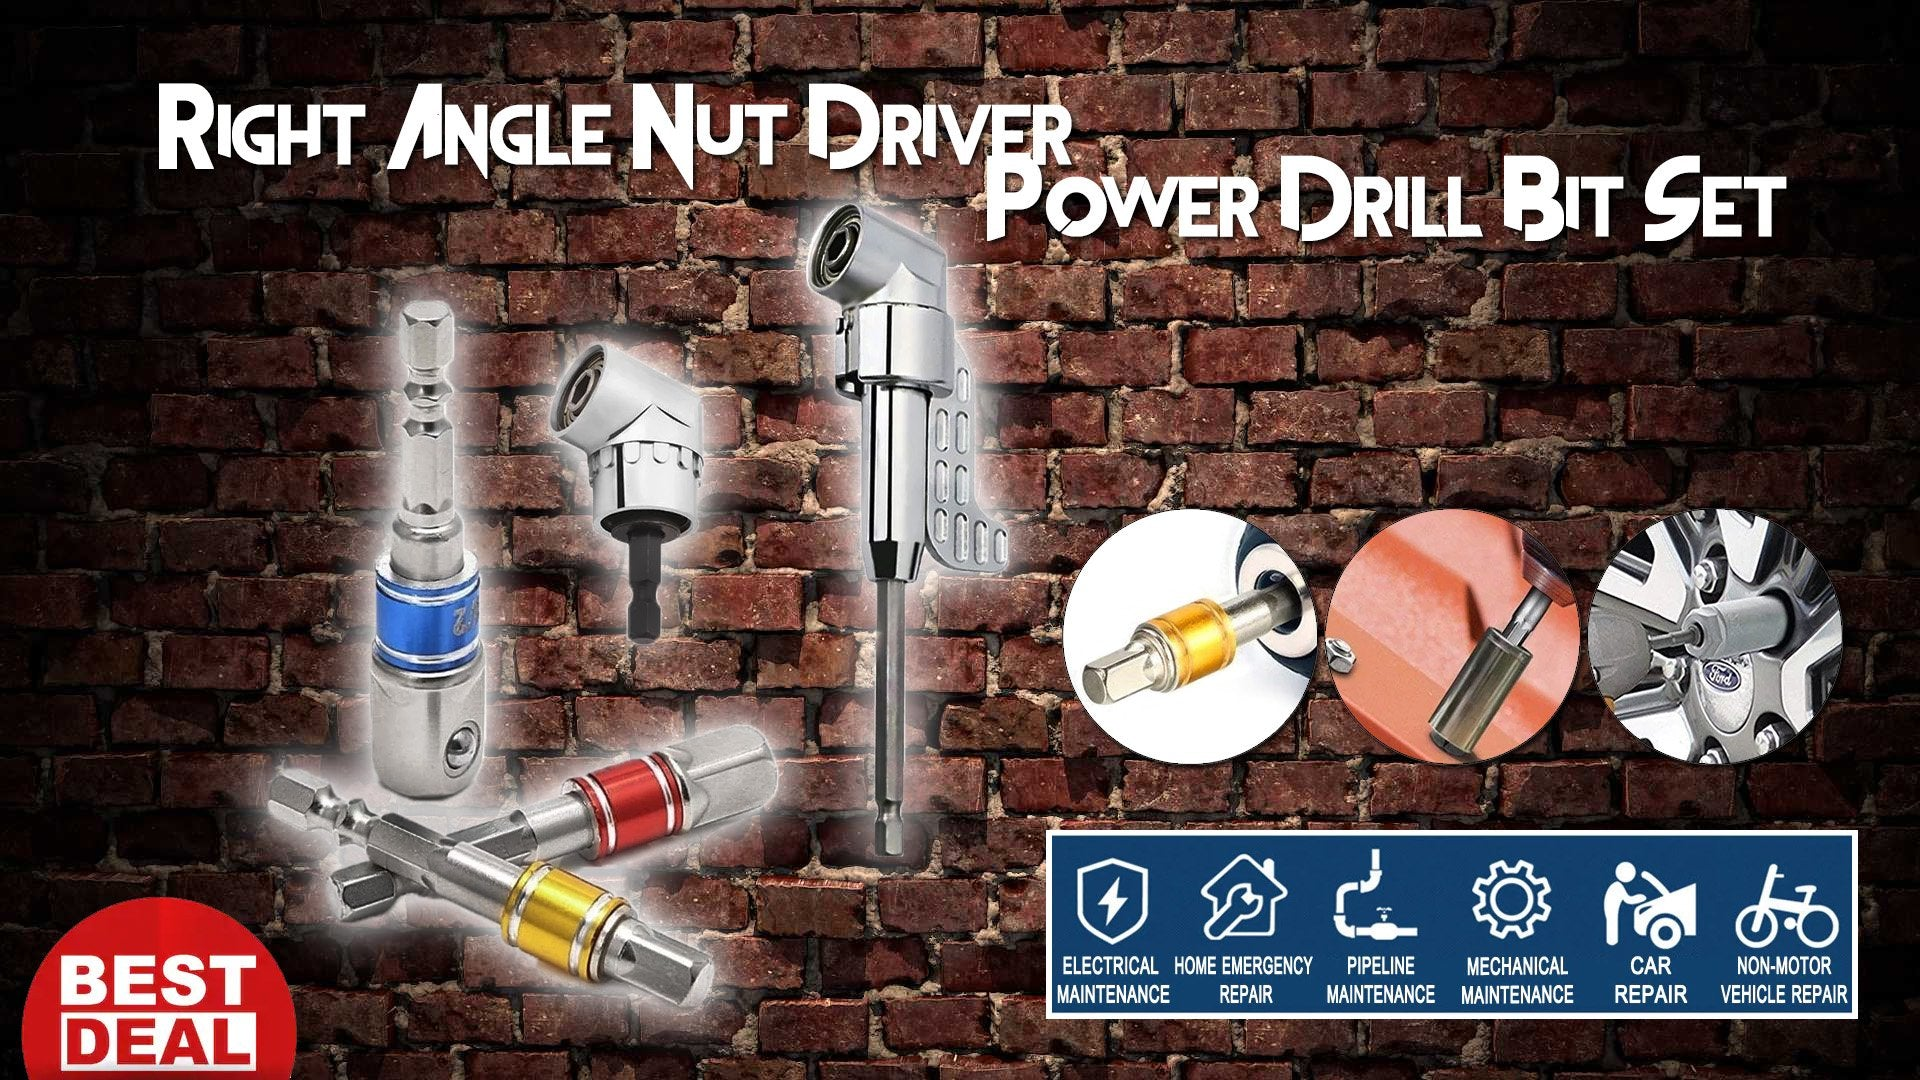 Right Angle Nut Driver Power Drill Bit Set - 50% OFF TODAY ONLY!